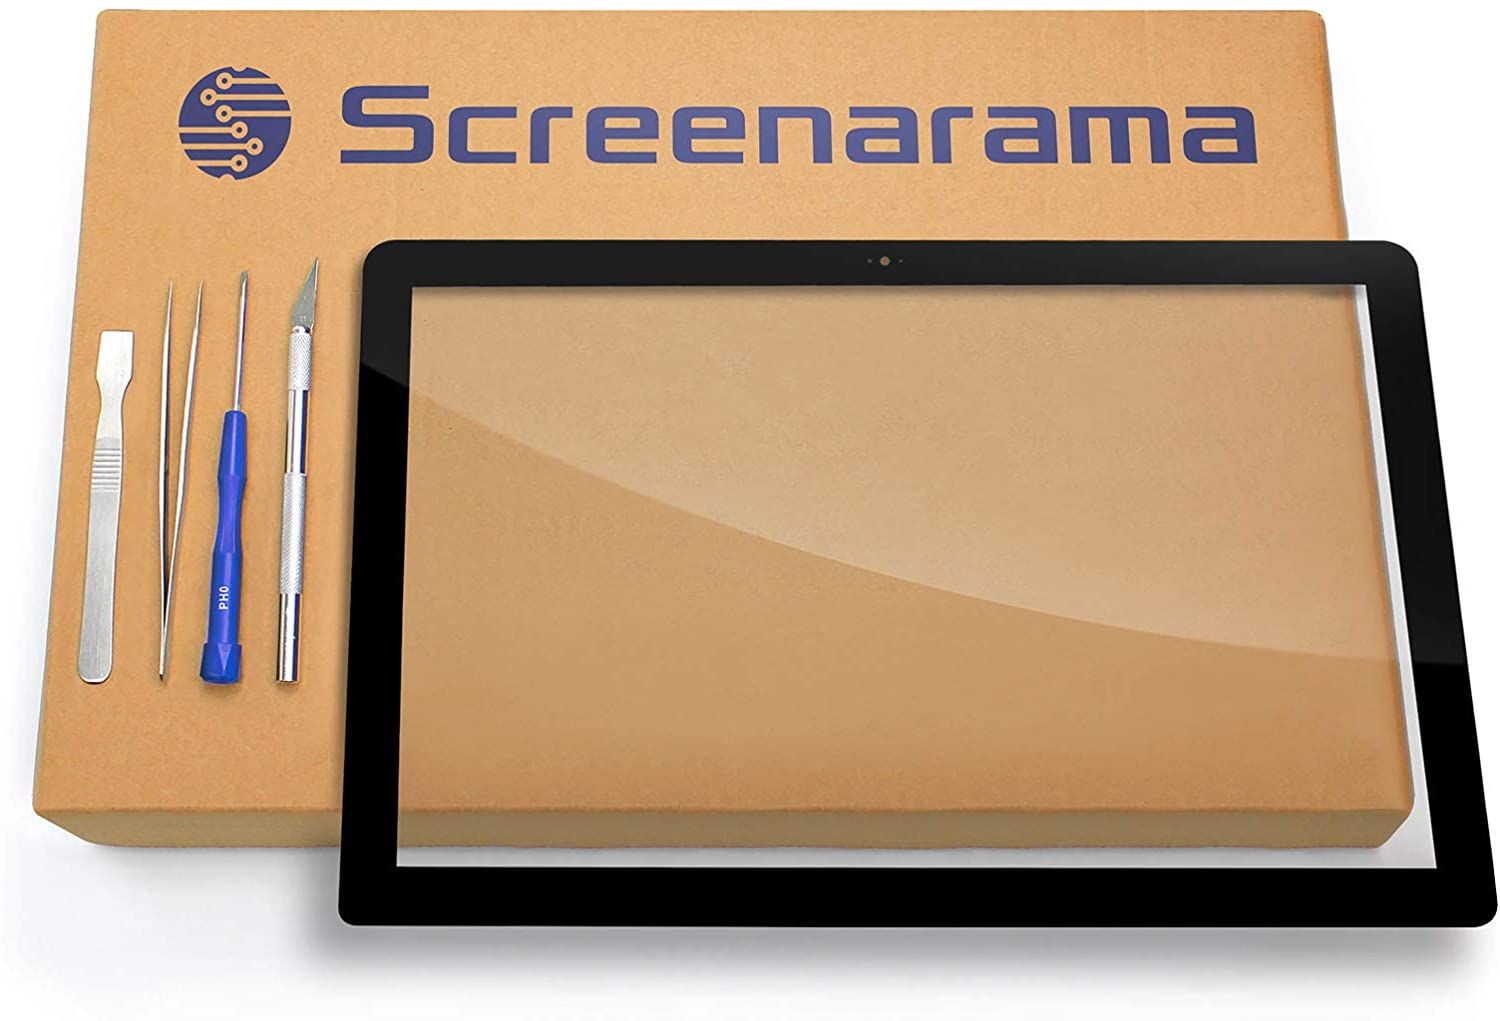 SCREENARAMA New Touch Screen Replacement for Toshiba Satellite E45T-B4106, Digitizer Glass with Tools